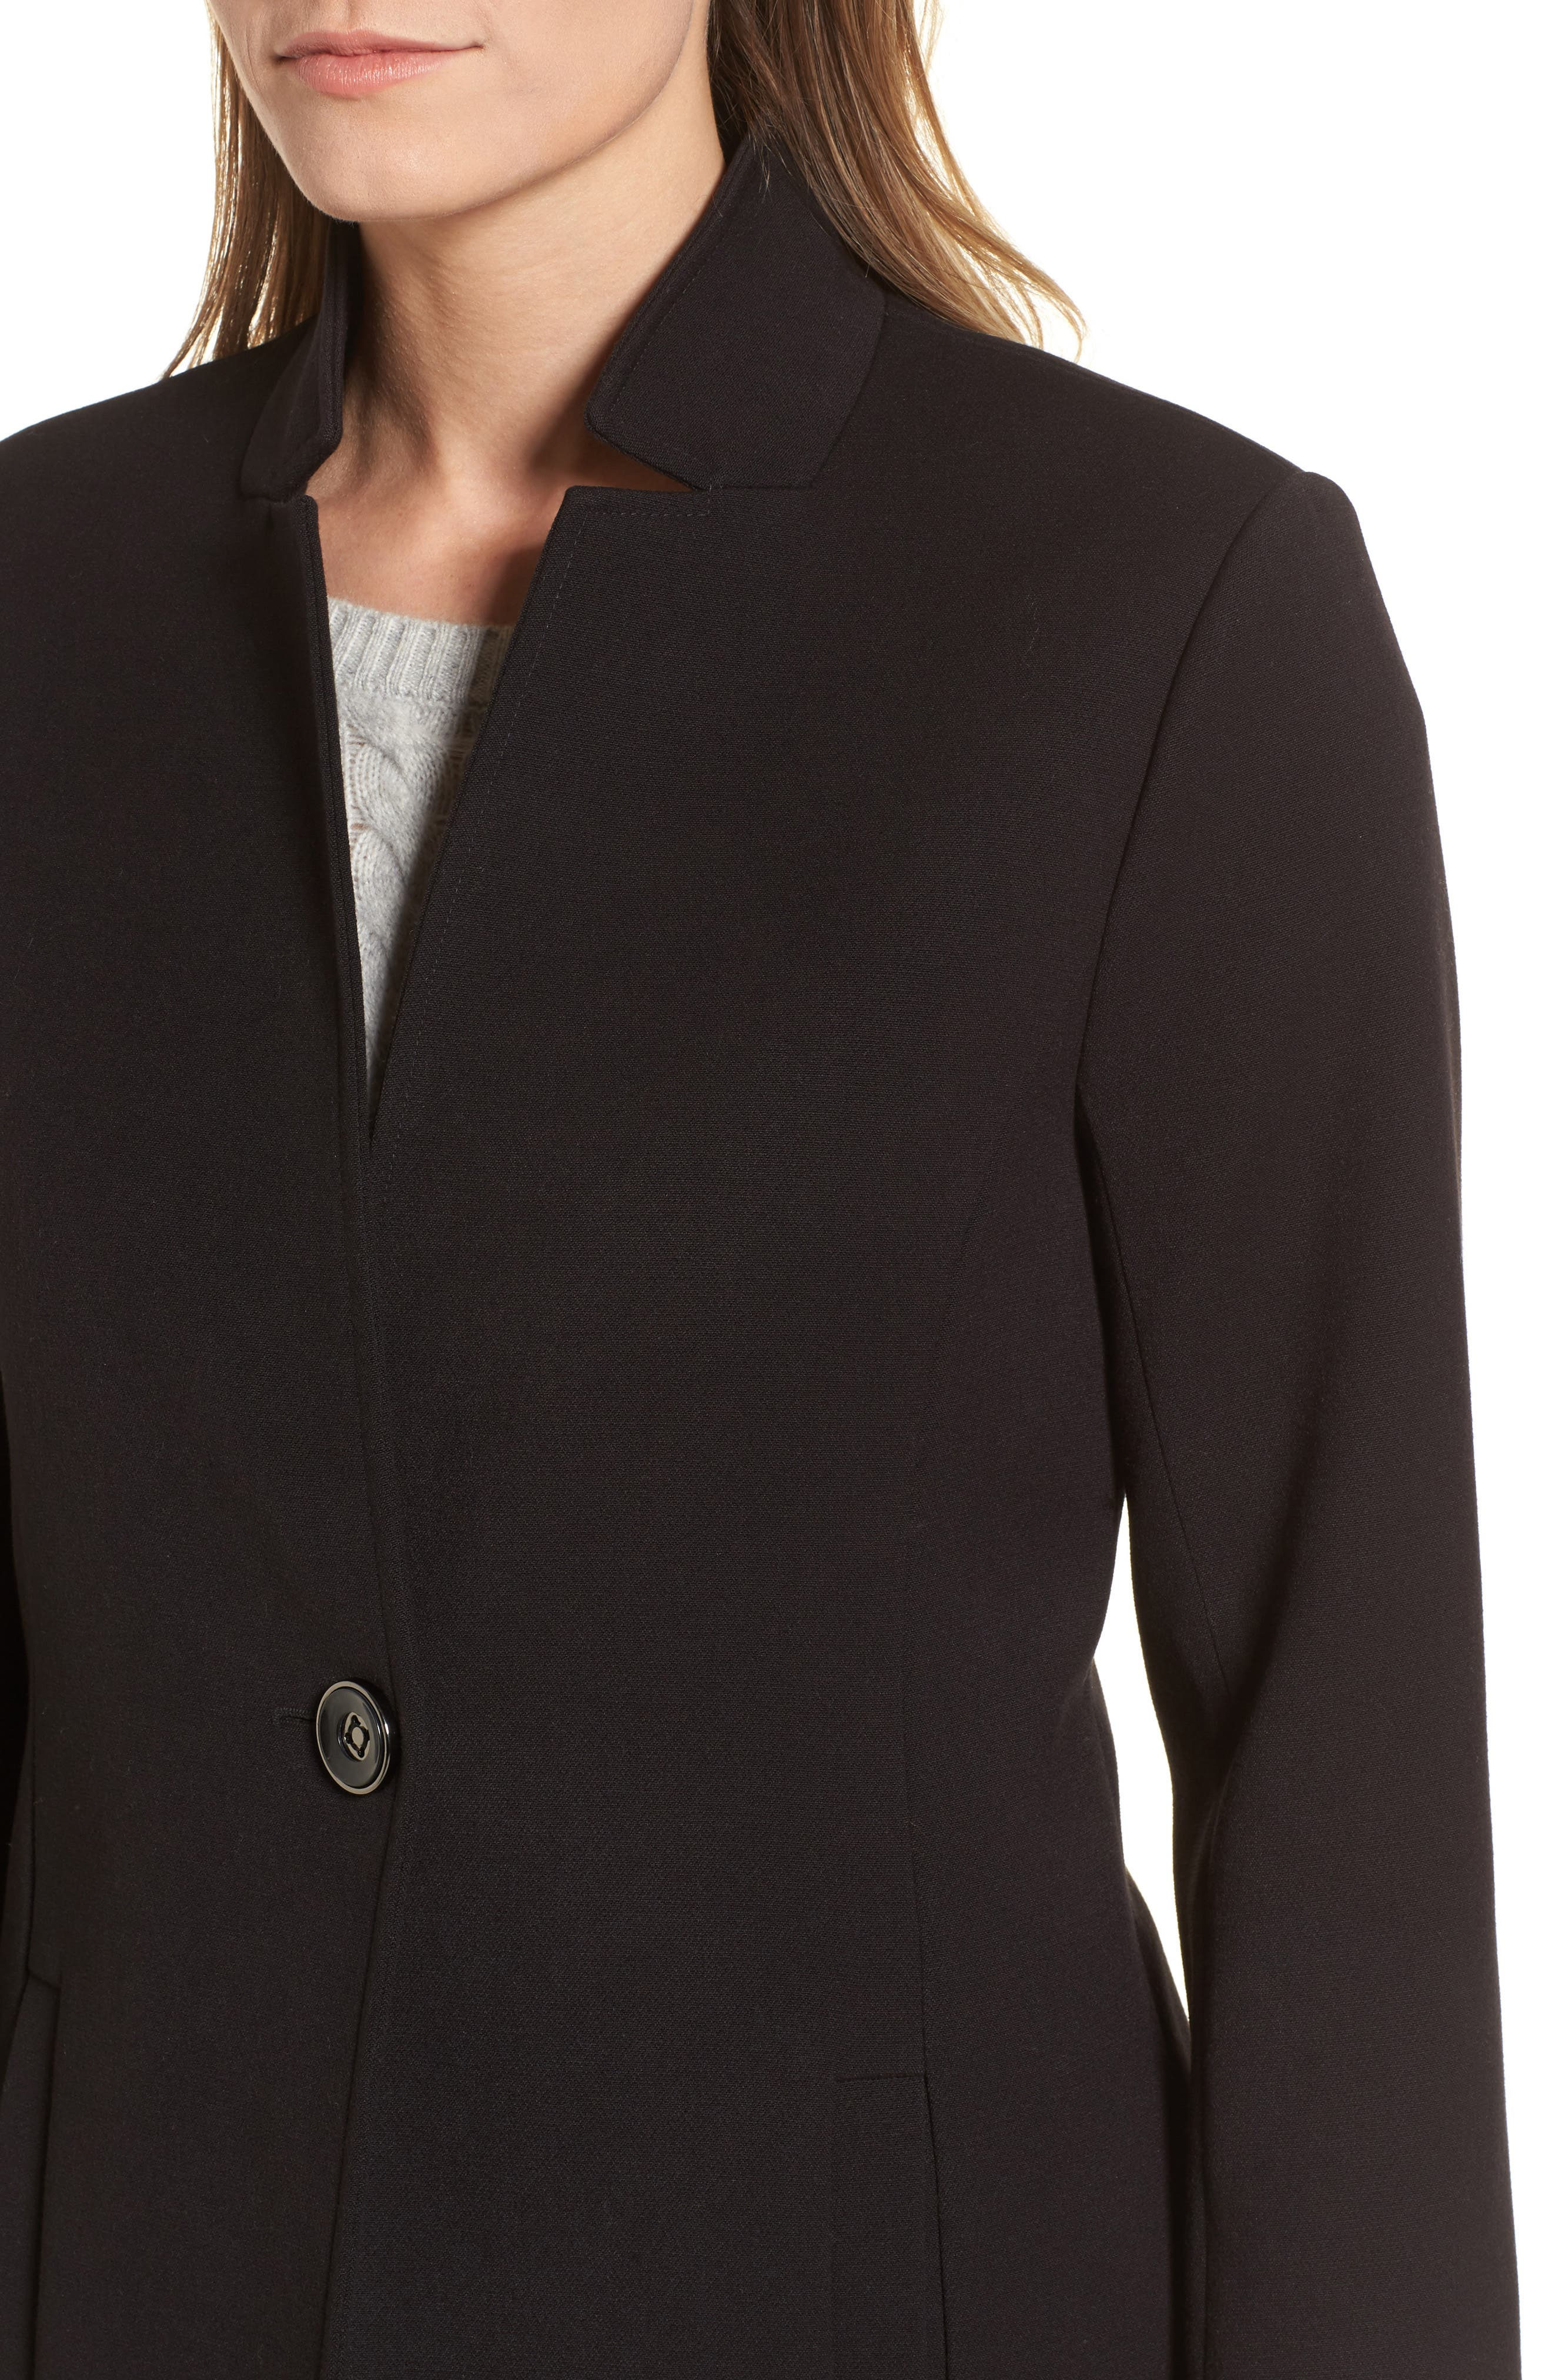 Ponte Knit Duster Jacket,                             Alternate thumbnail 4, color,                             Black